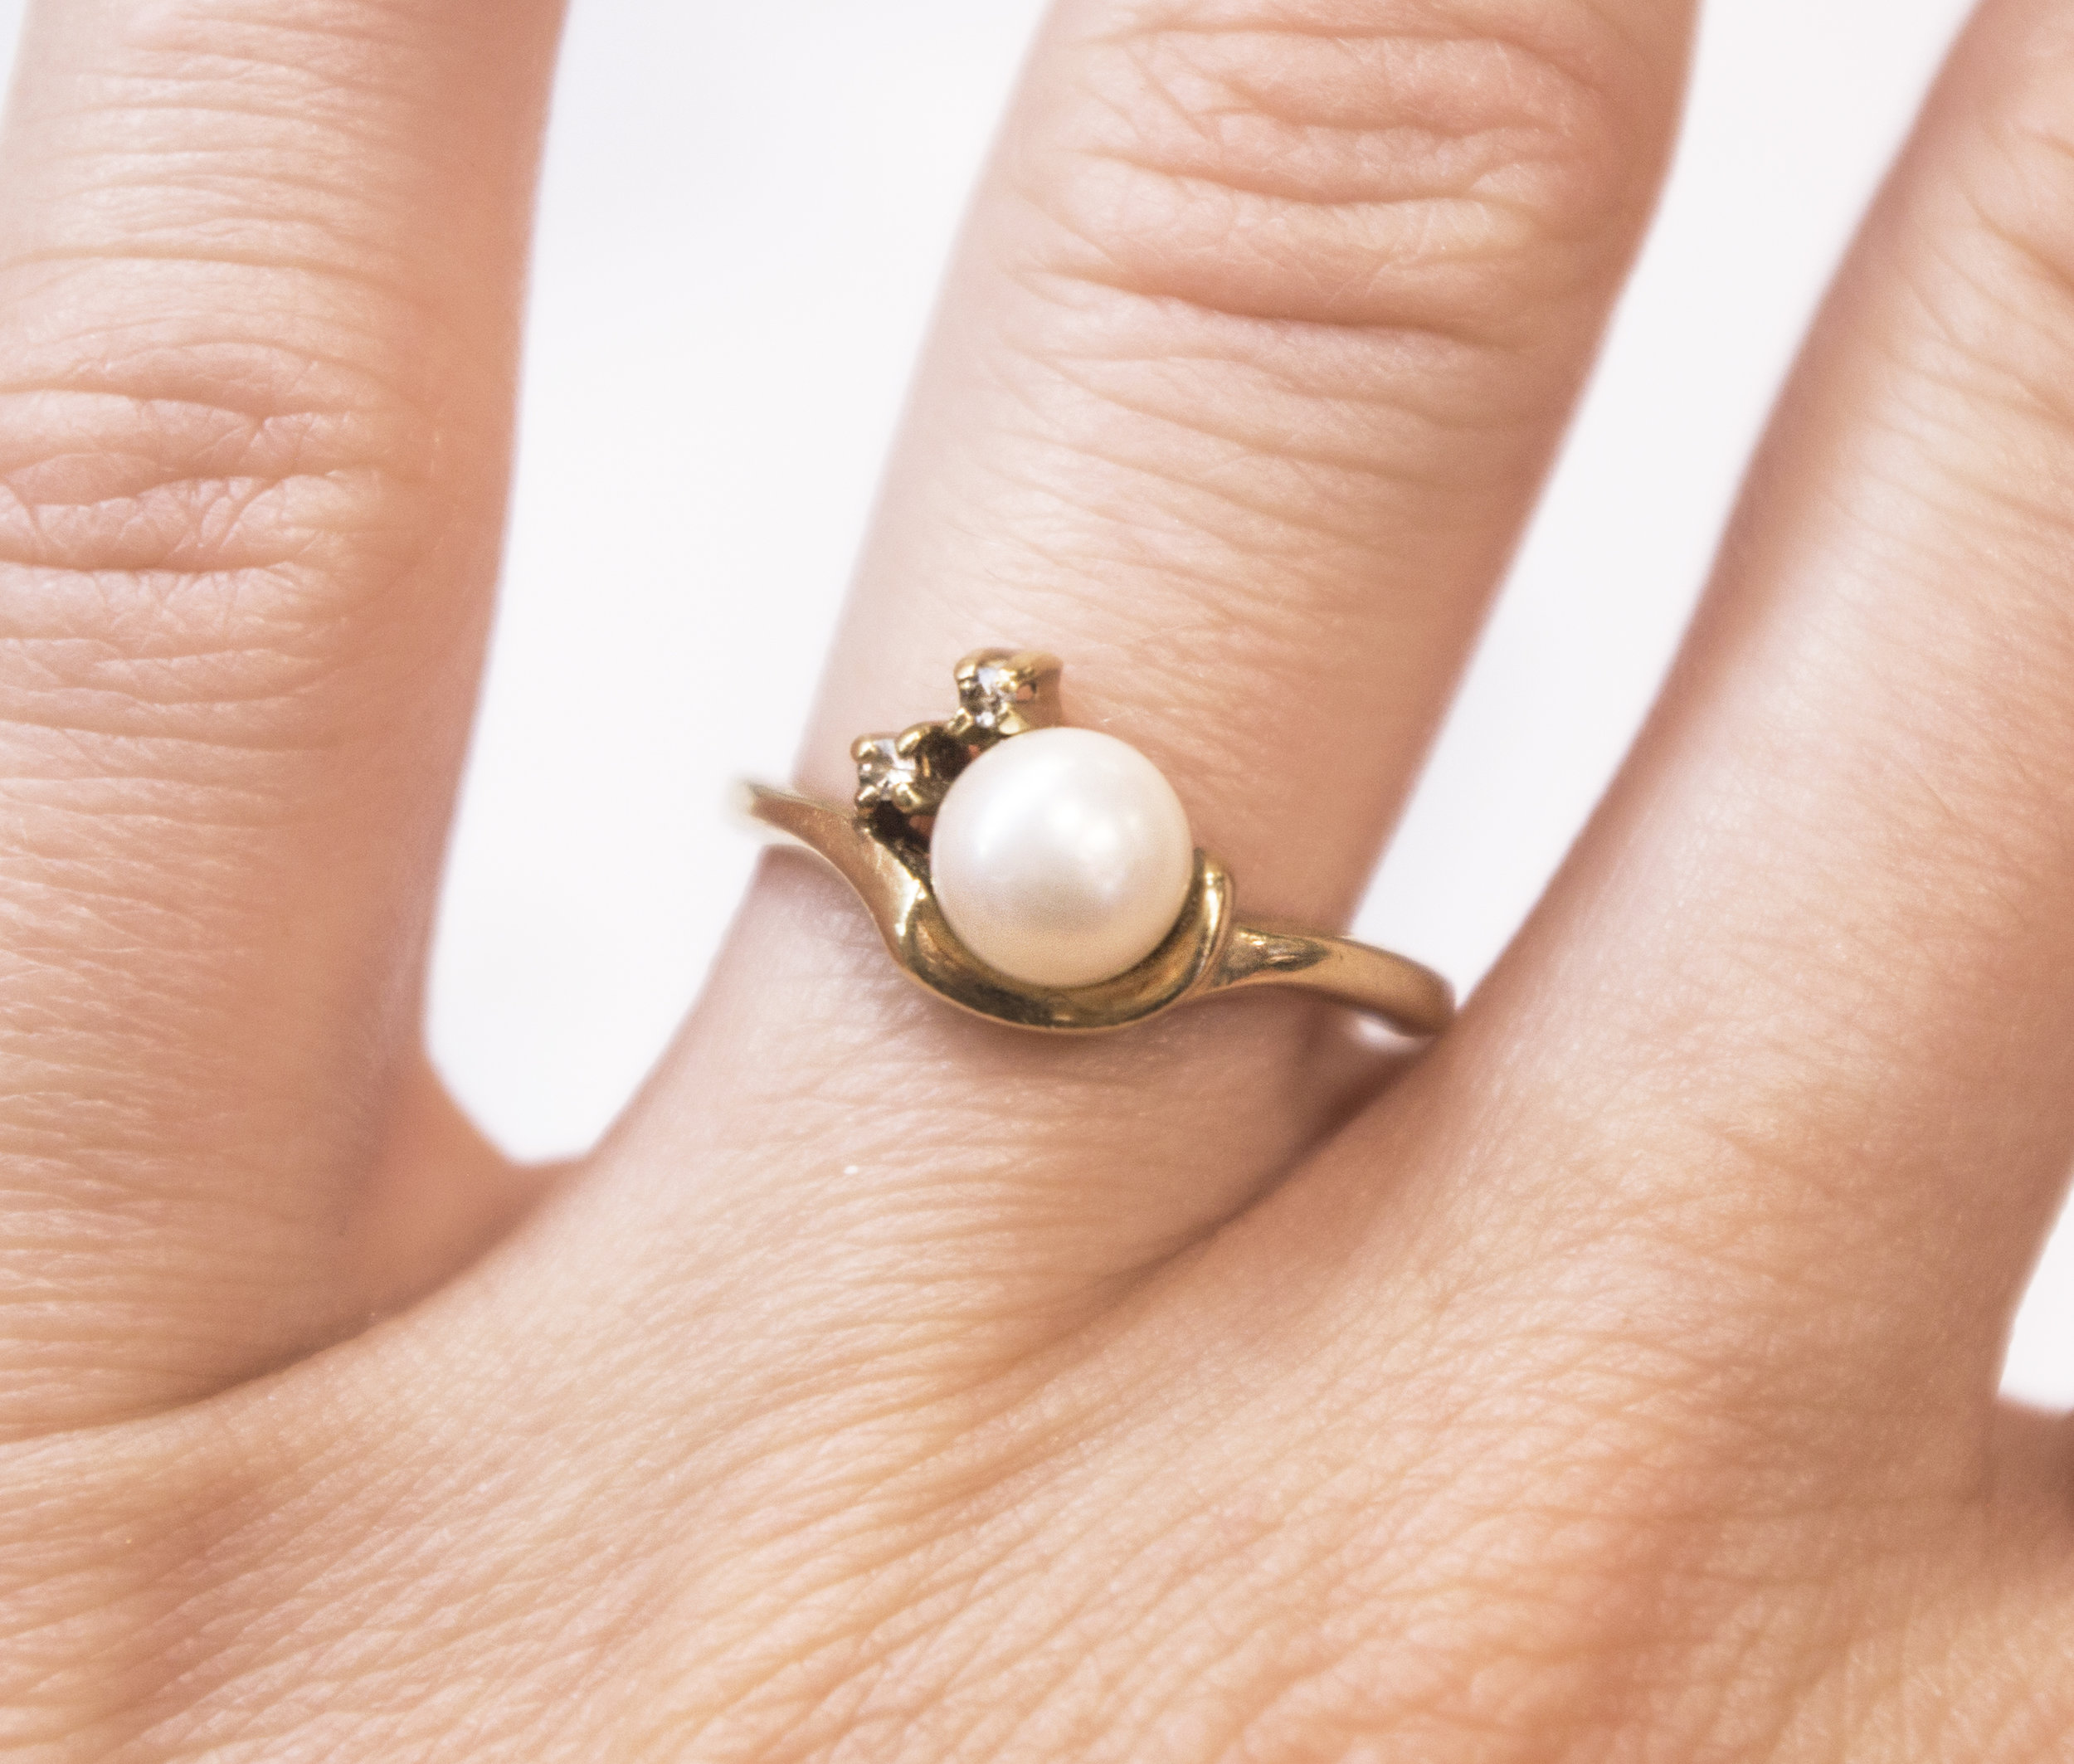 Estate Pearl and Dia in 14KY ring.JPG